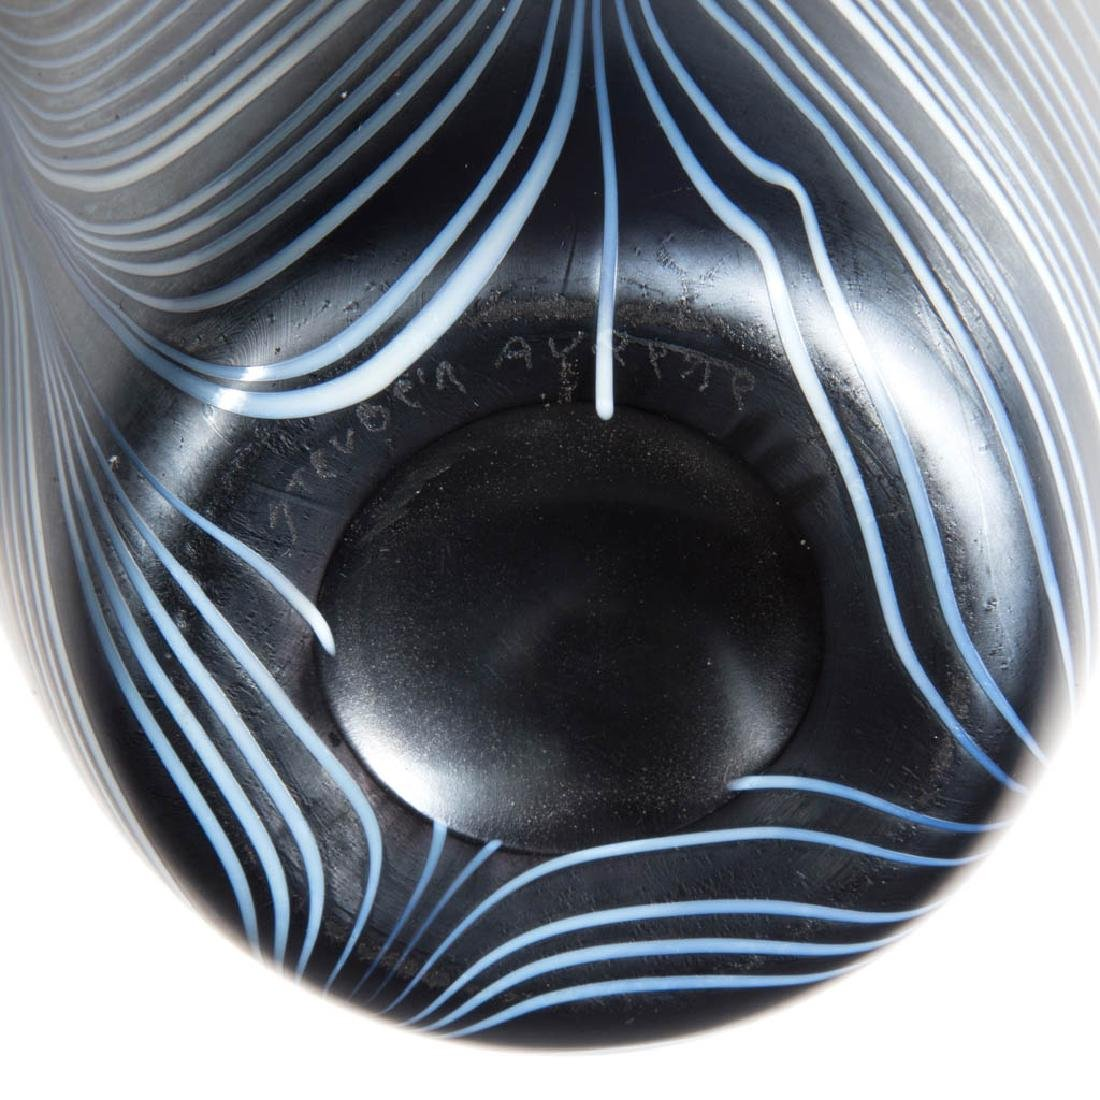 IMPERIAL LEAD LUSTRE LOOP ART GLASS VASE - 3